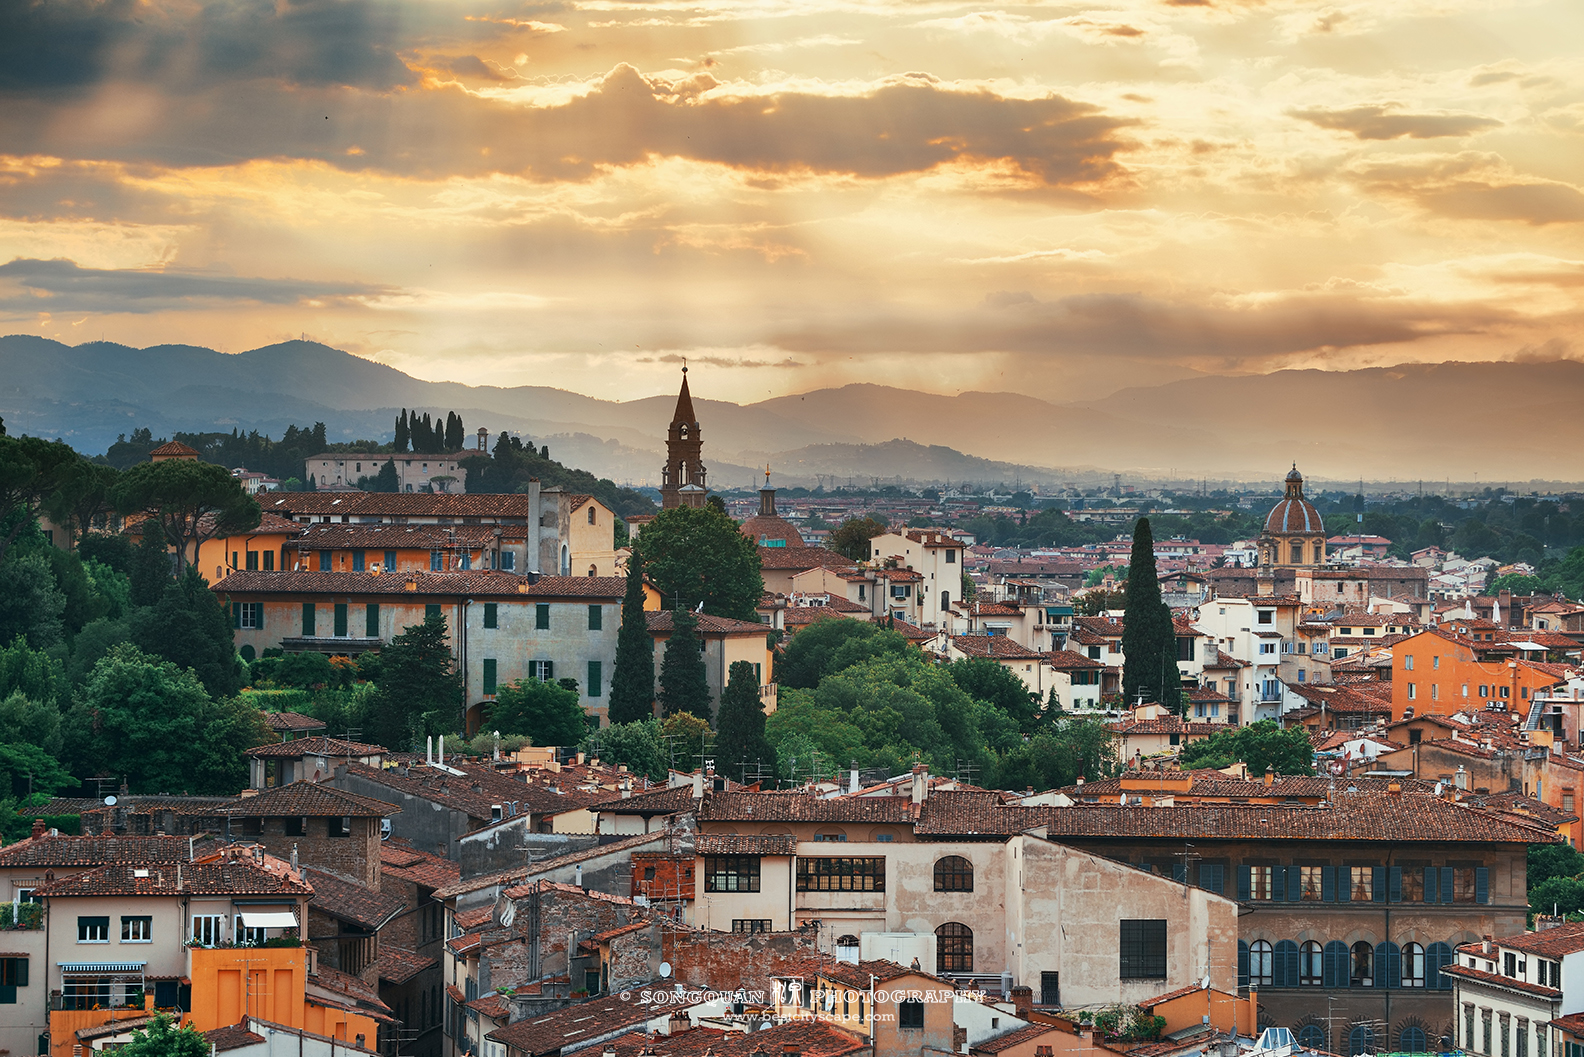 Sunny afternoon in Florence in Italy.